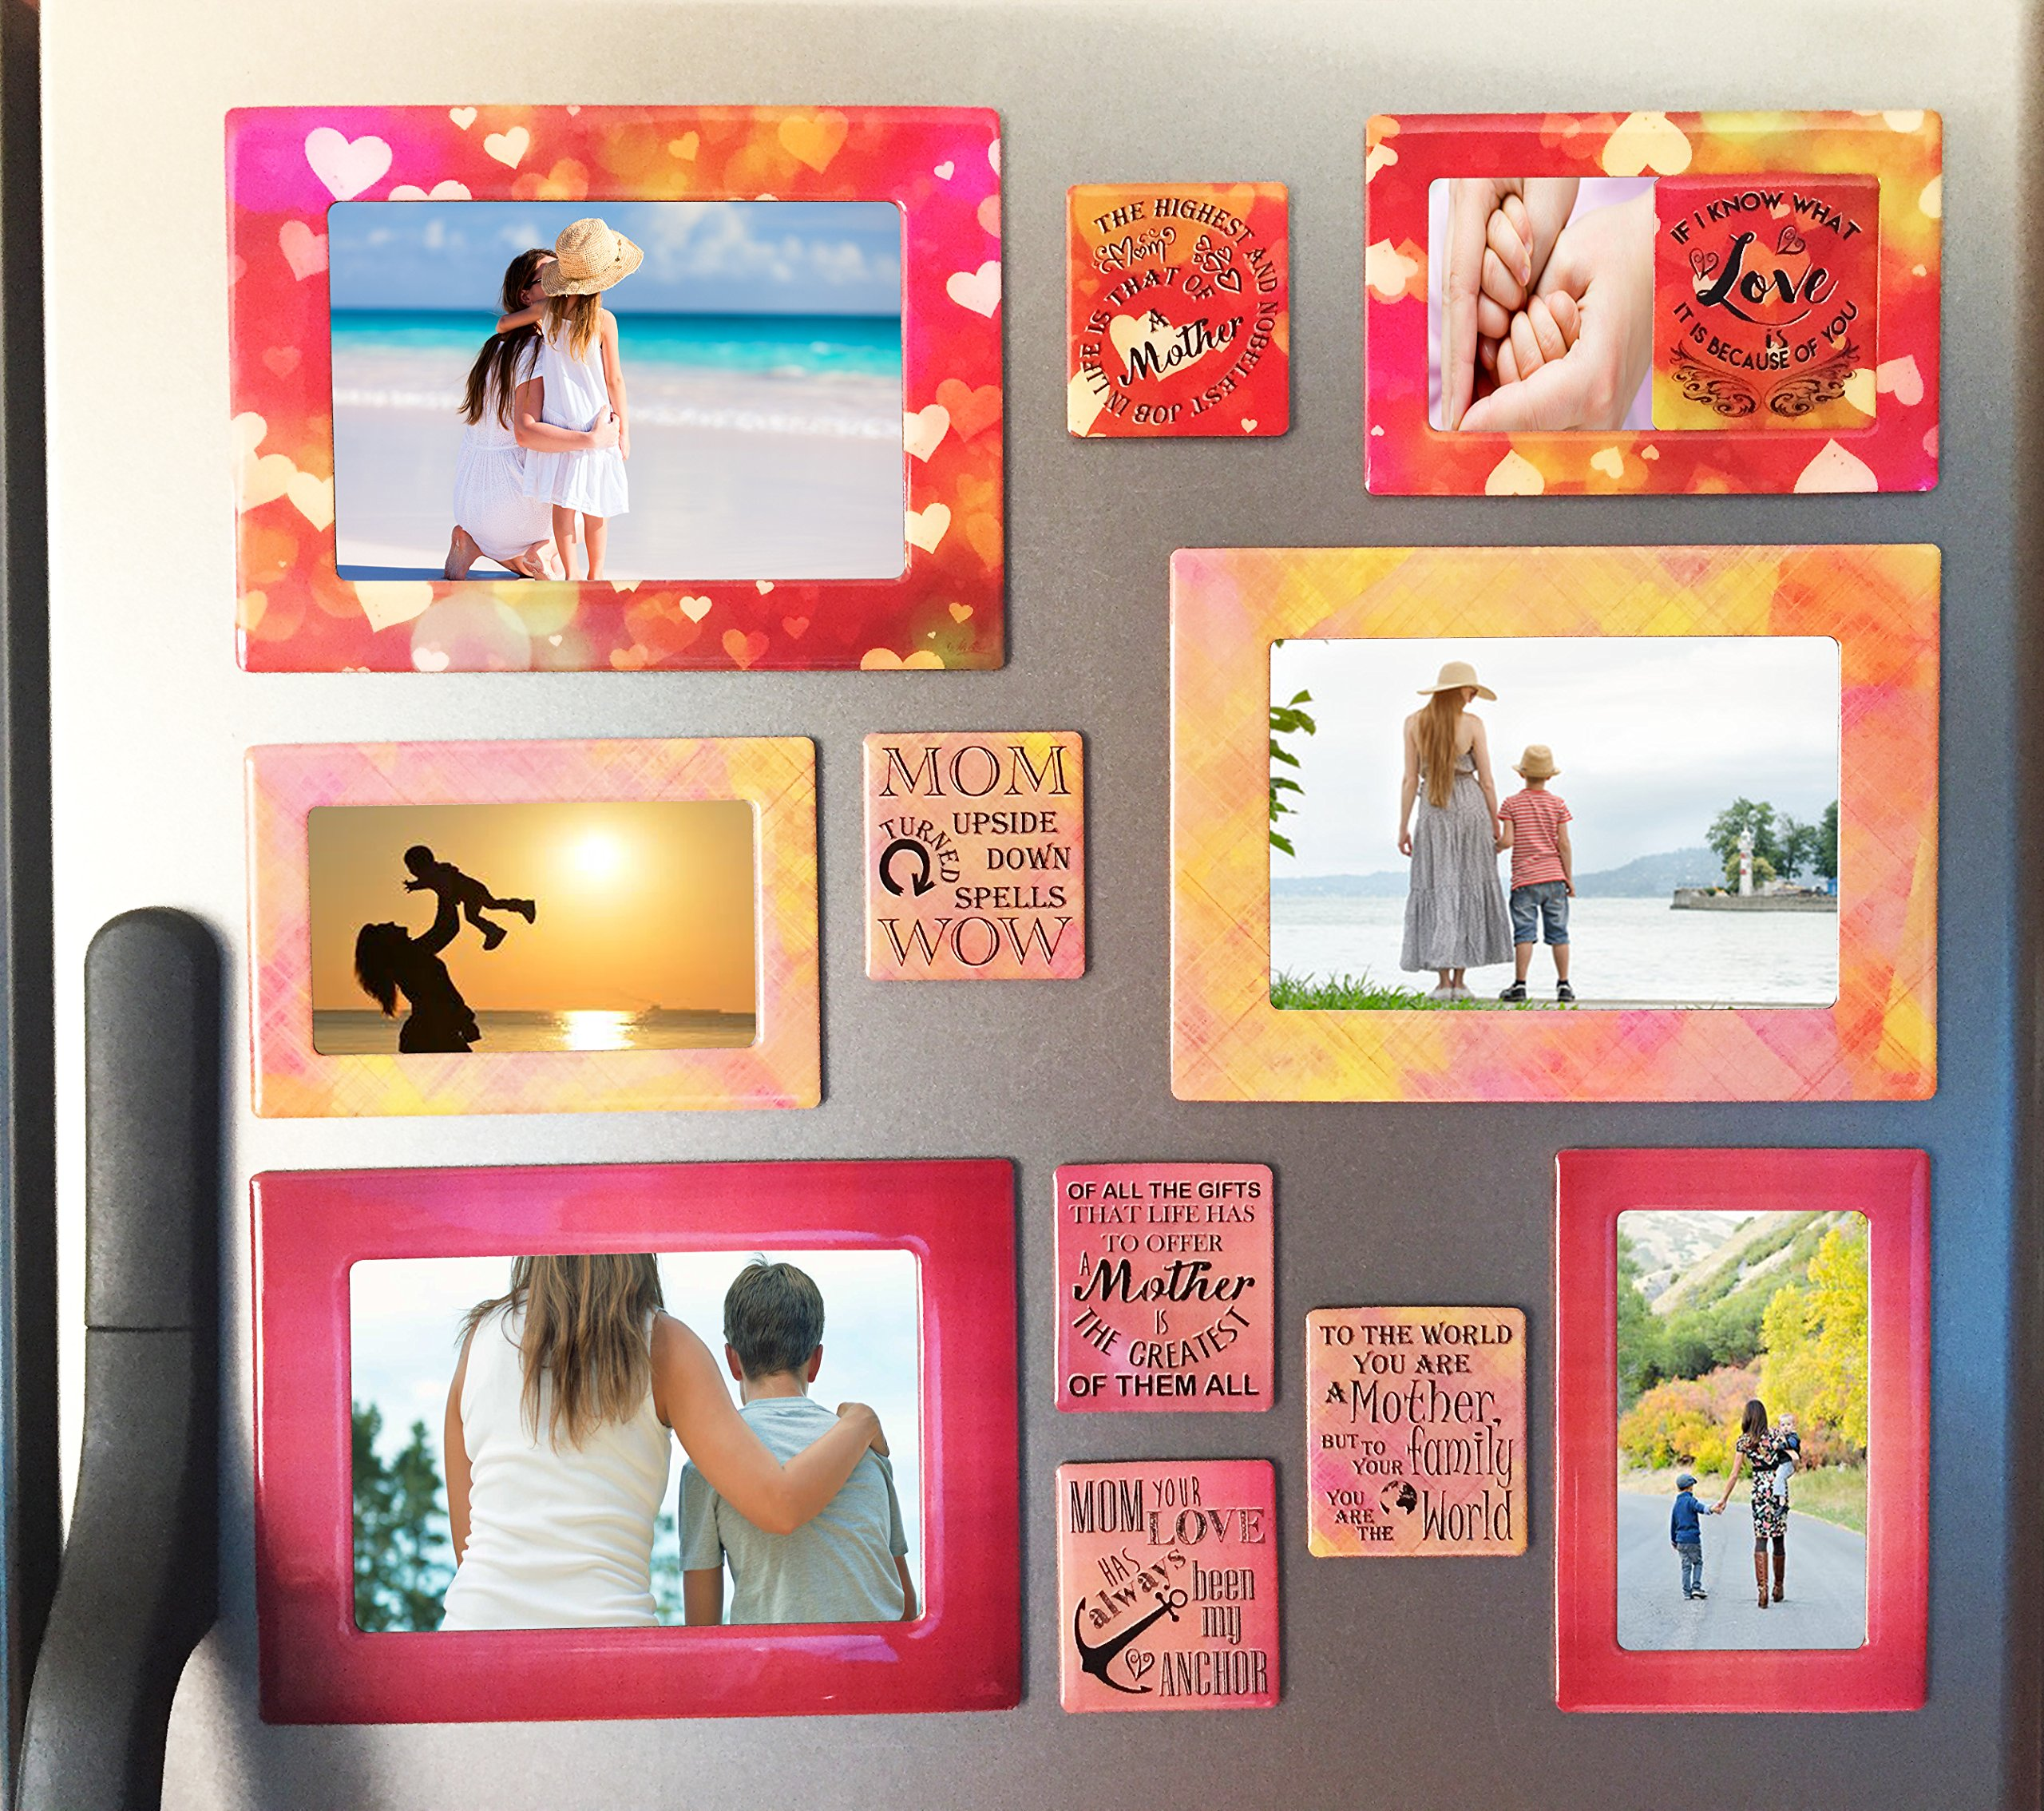 Gift for Mom 12 Piece Magnetic Picture Frames and Refrigerator Magnets with Inspirational Quotes Photo Collage by Sheen 5x7 4x6 3.5x5 2.5x3 Wallet - Mom Gifts - Gift for Mother - Birthday Gift for Mom by Sheen (Image #5)